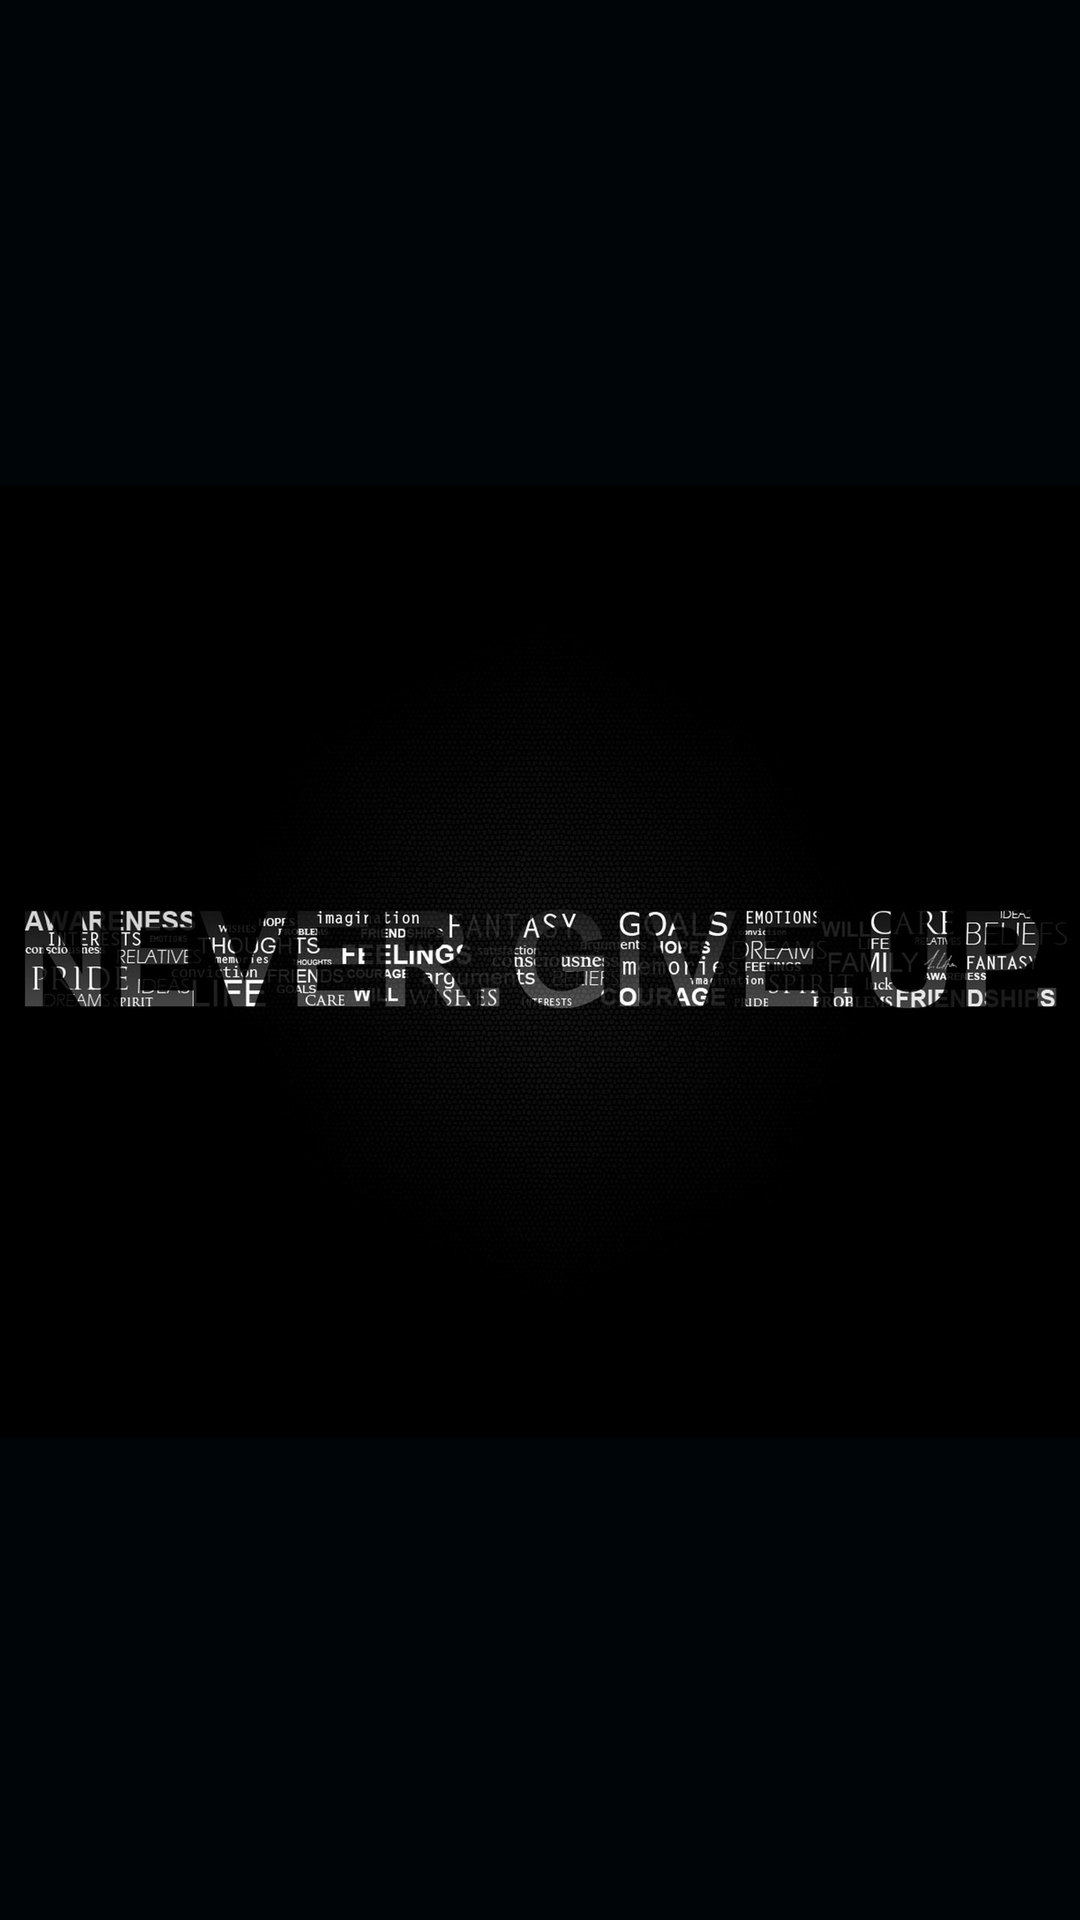 Never Give Up iPhone Wallpaper - iPhone Wallpapers ...